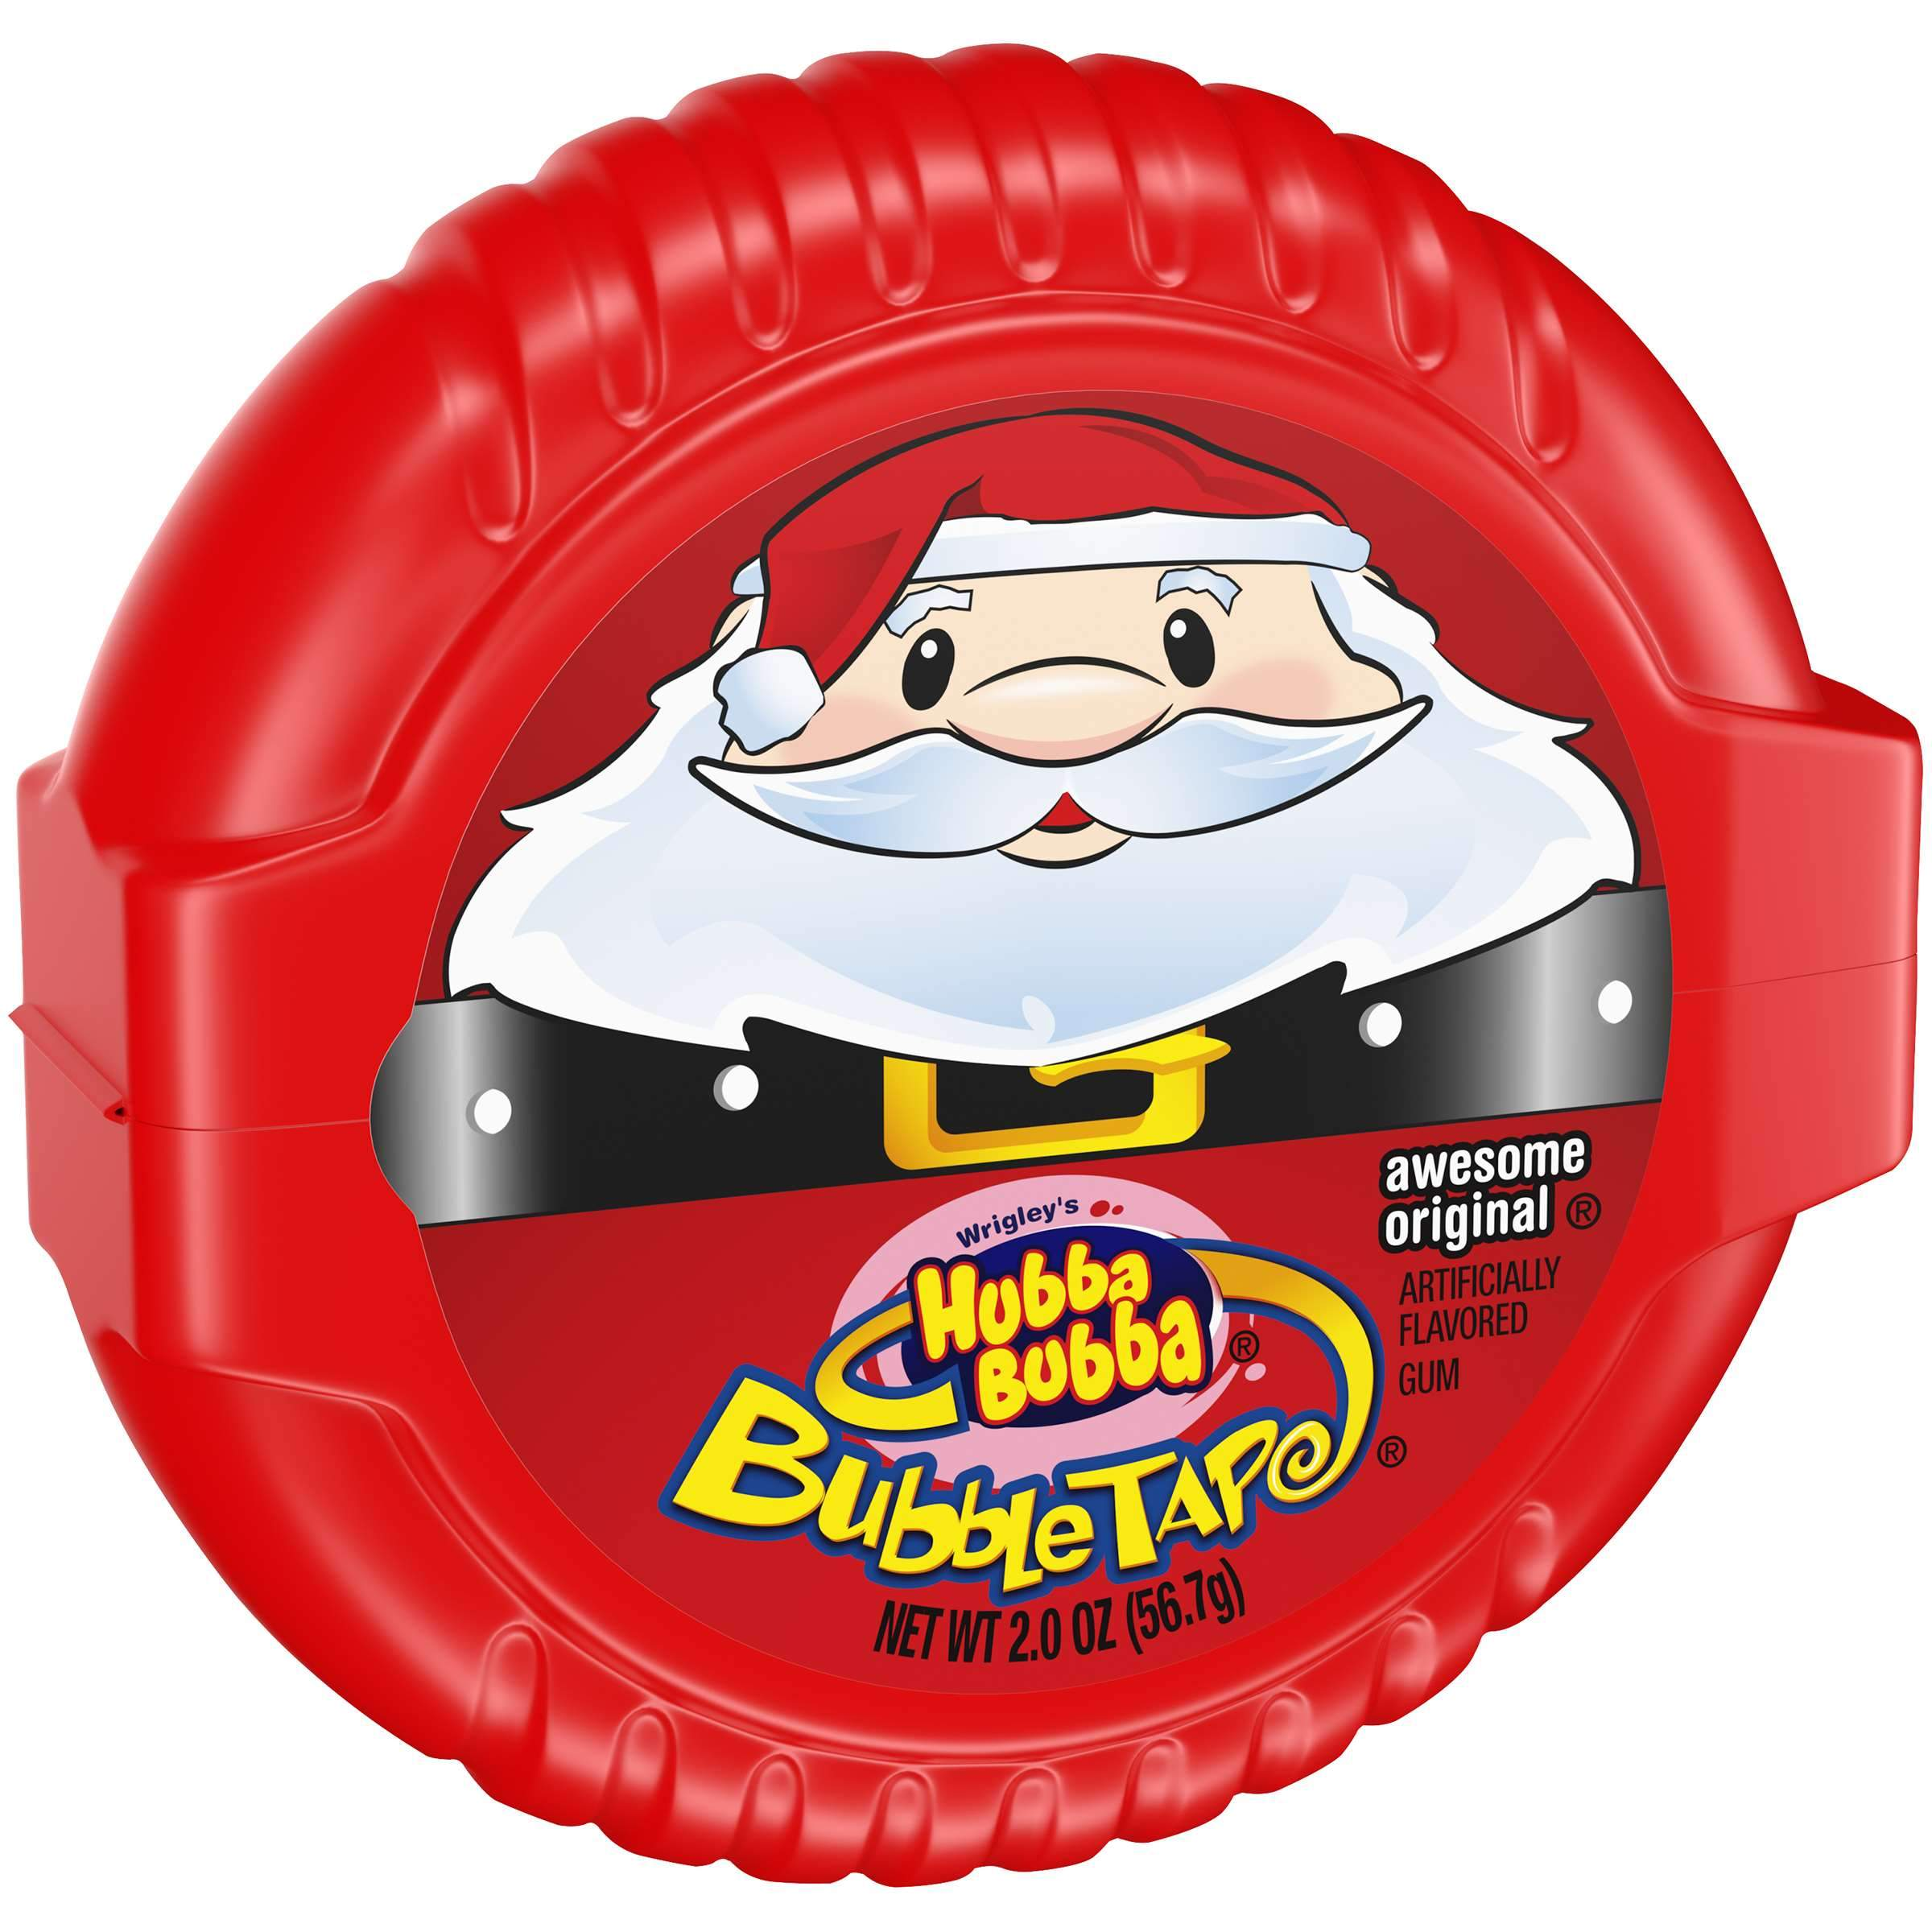 Hubba Bubba Bubble Gum Hubba Bubba Holiday 2 Ounce